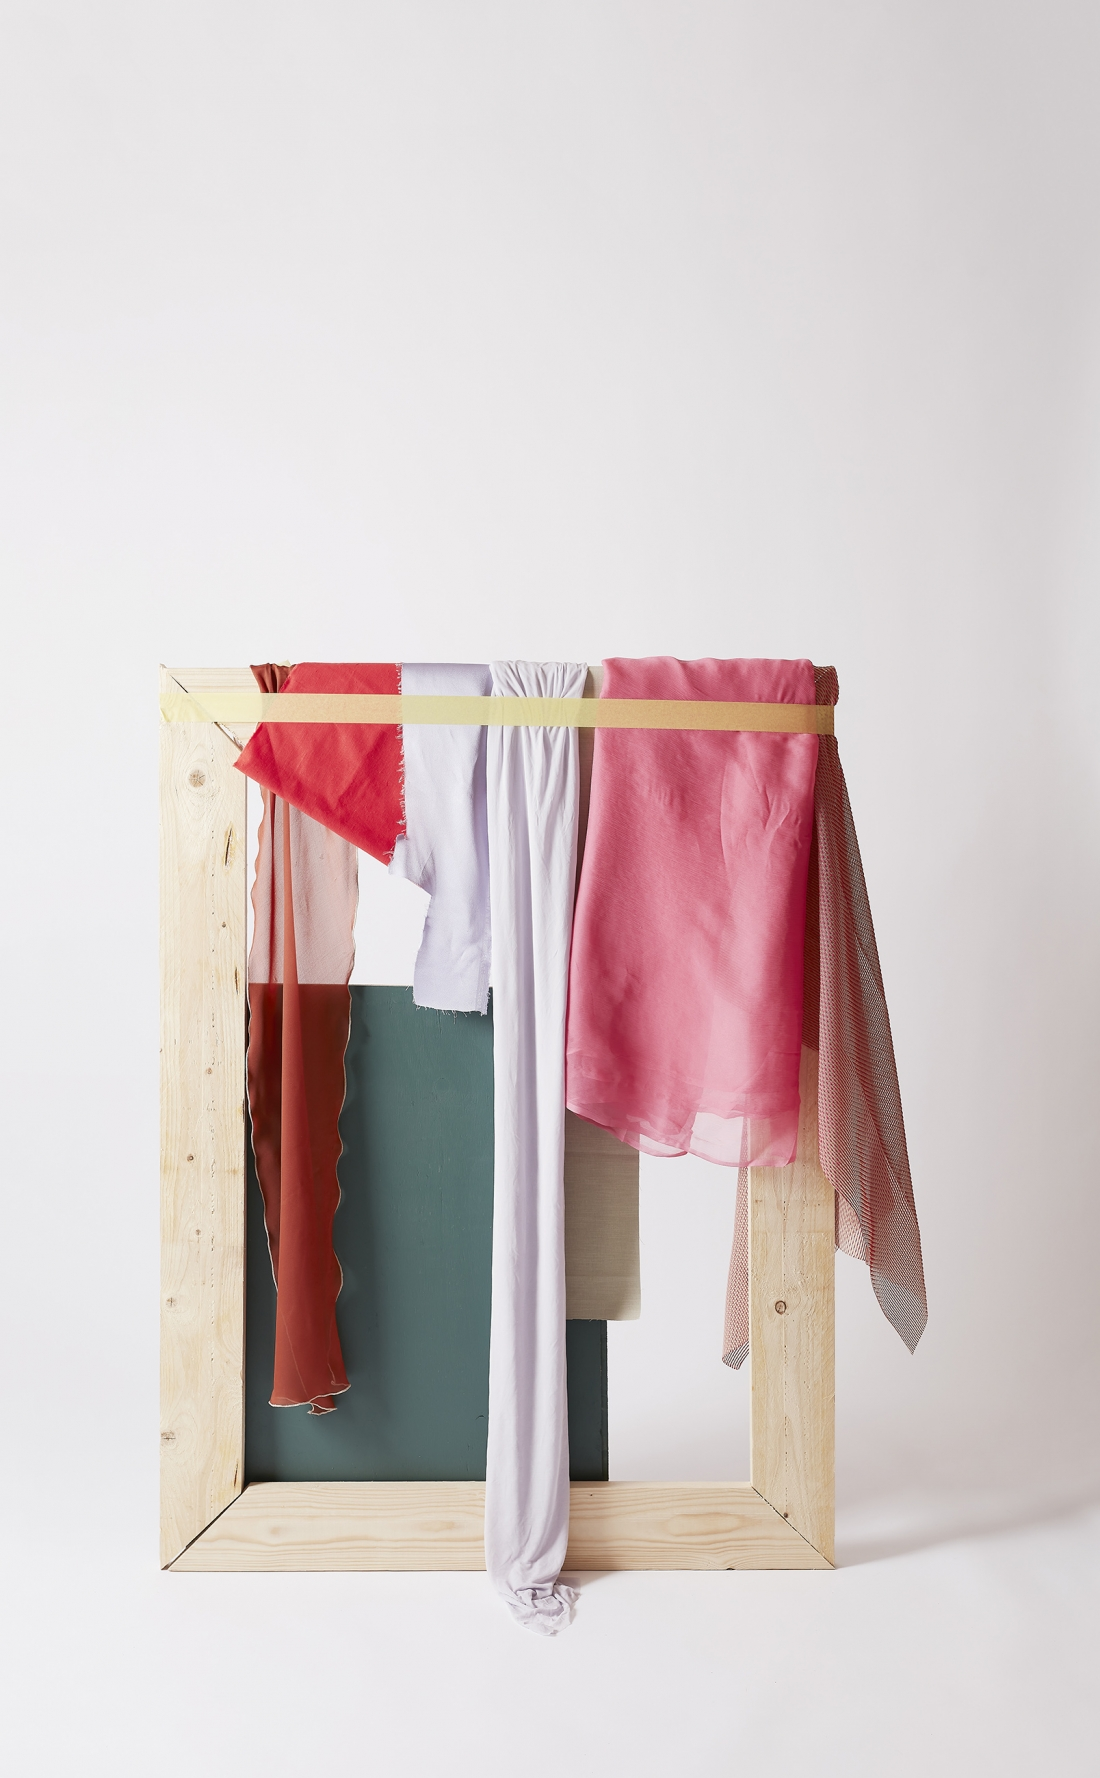 Revive: copyright: SPOTT for Heimtextil. Photo: Andreas Houmann